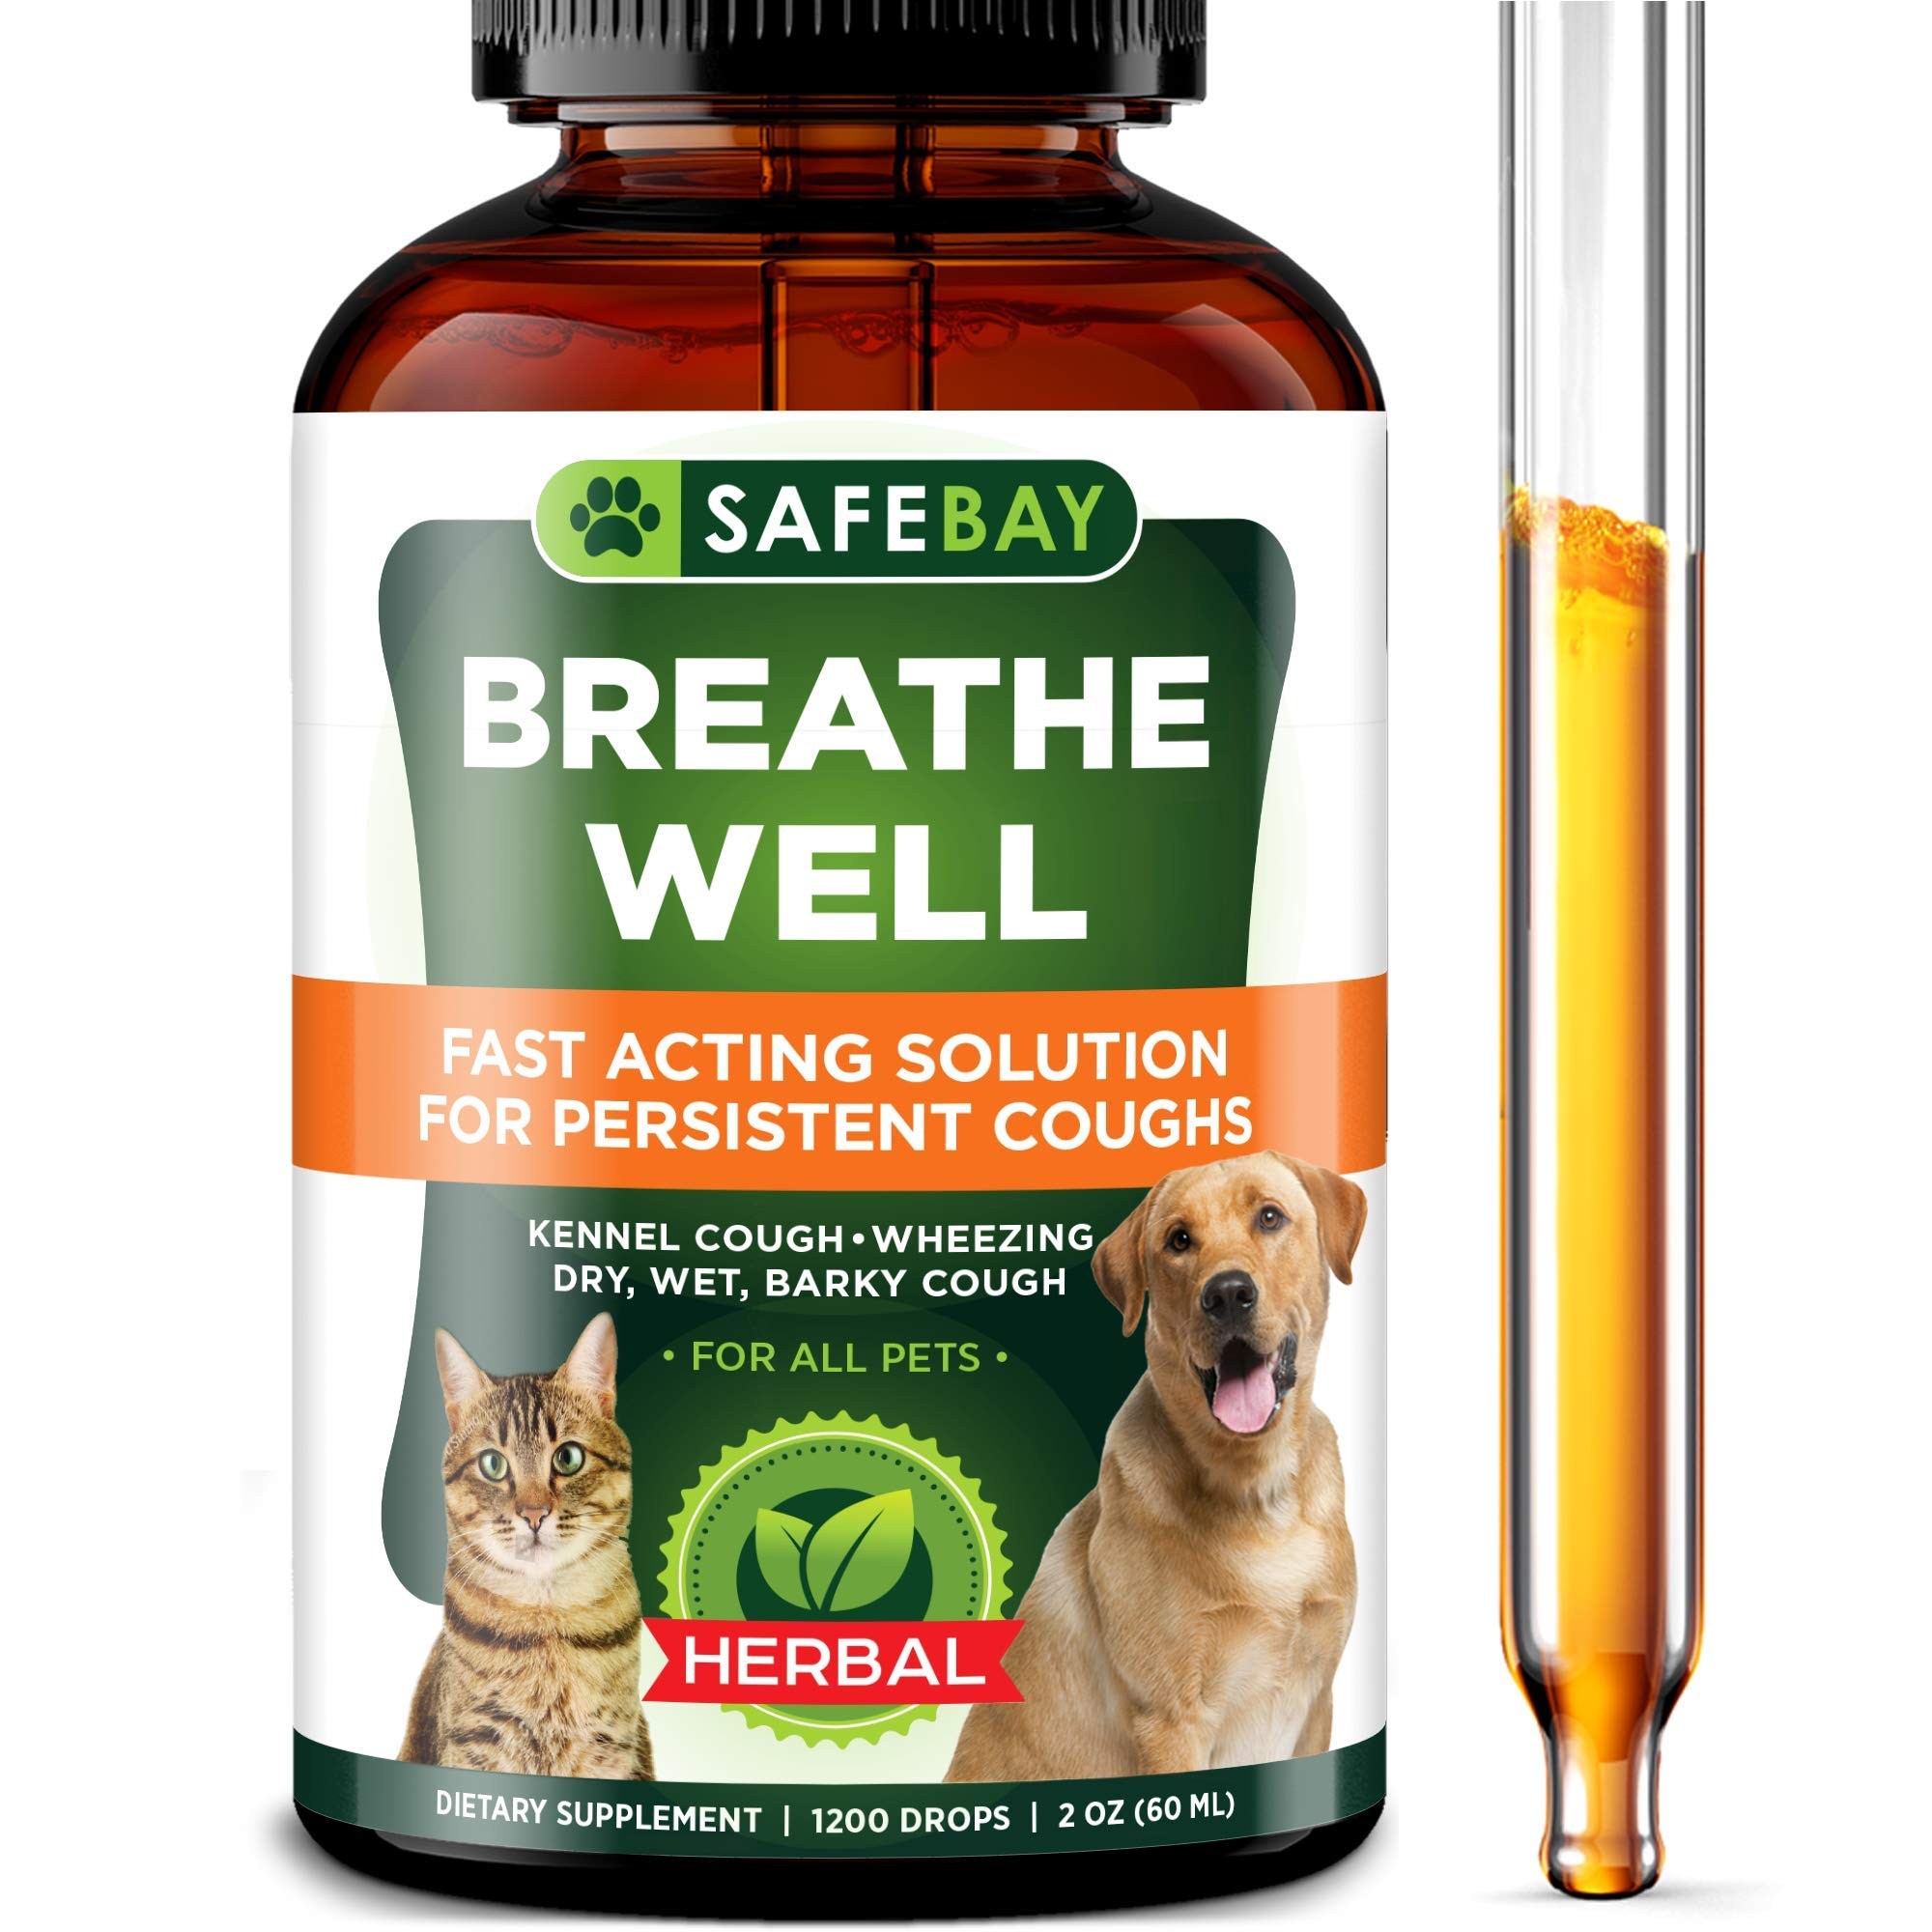 SafeBay Dog Supplement and Cat Supplement Premium Quality - 1200 Drops 2 Oz - Calendula for Dogs, Elderberry for Dogs and Cats Too! Made in USA - for Dry, Wet & Barky Pet Cough - Cruelty Free by SafeBay